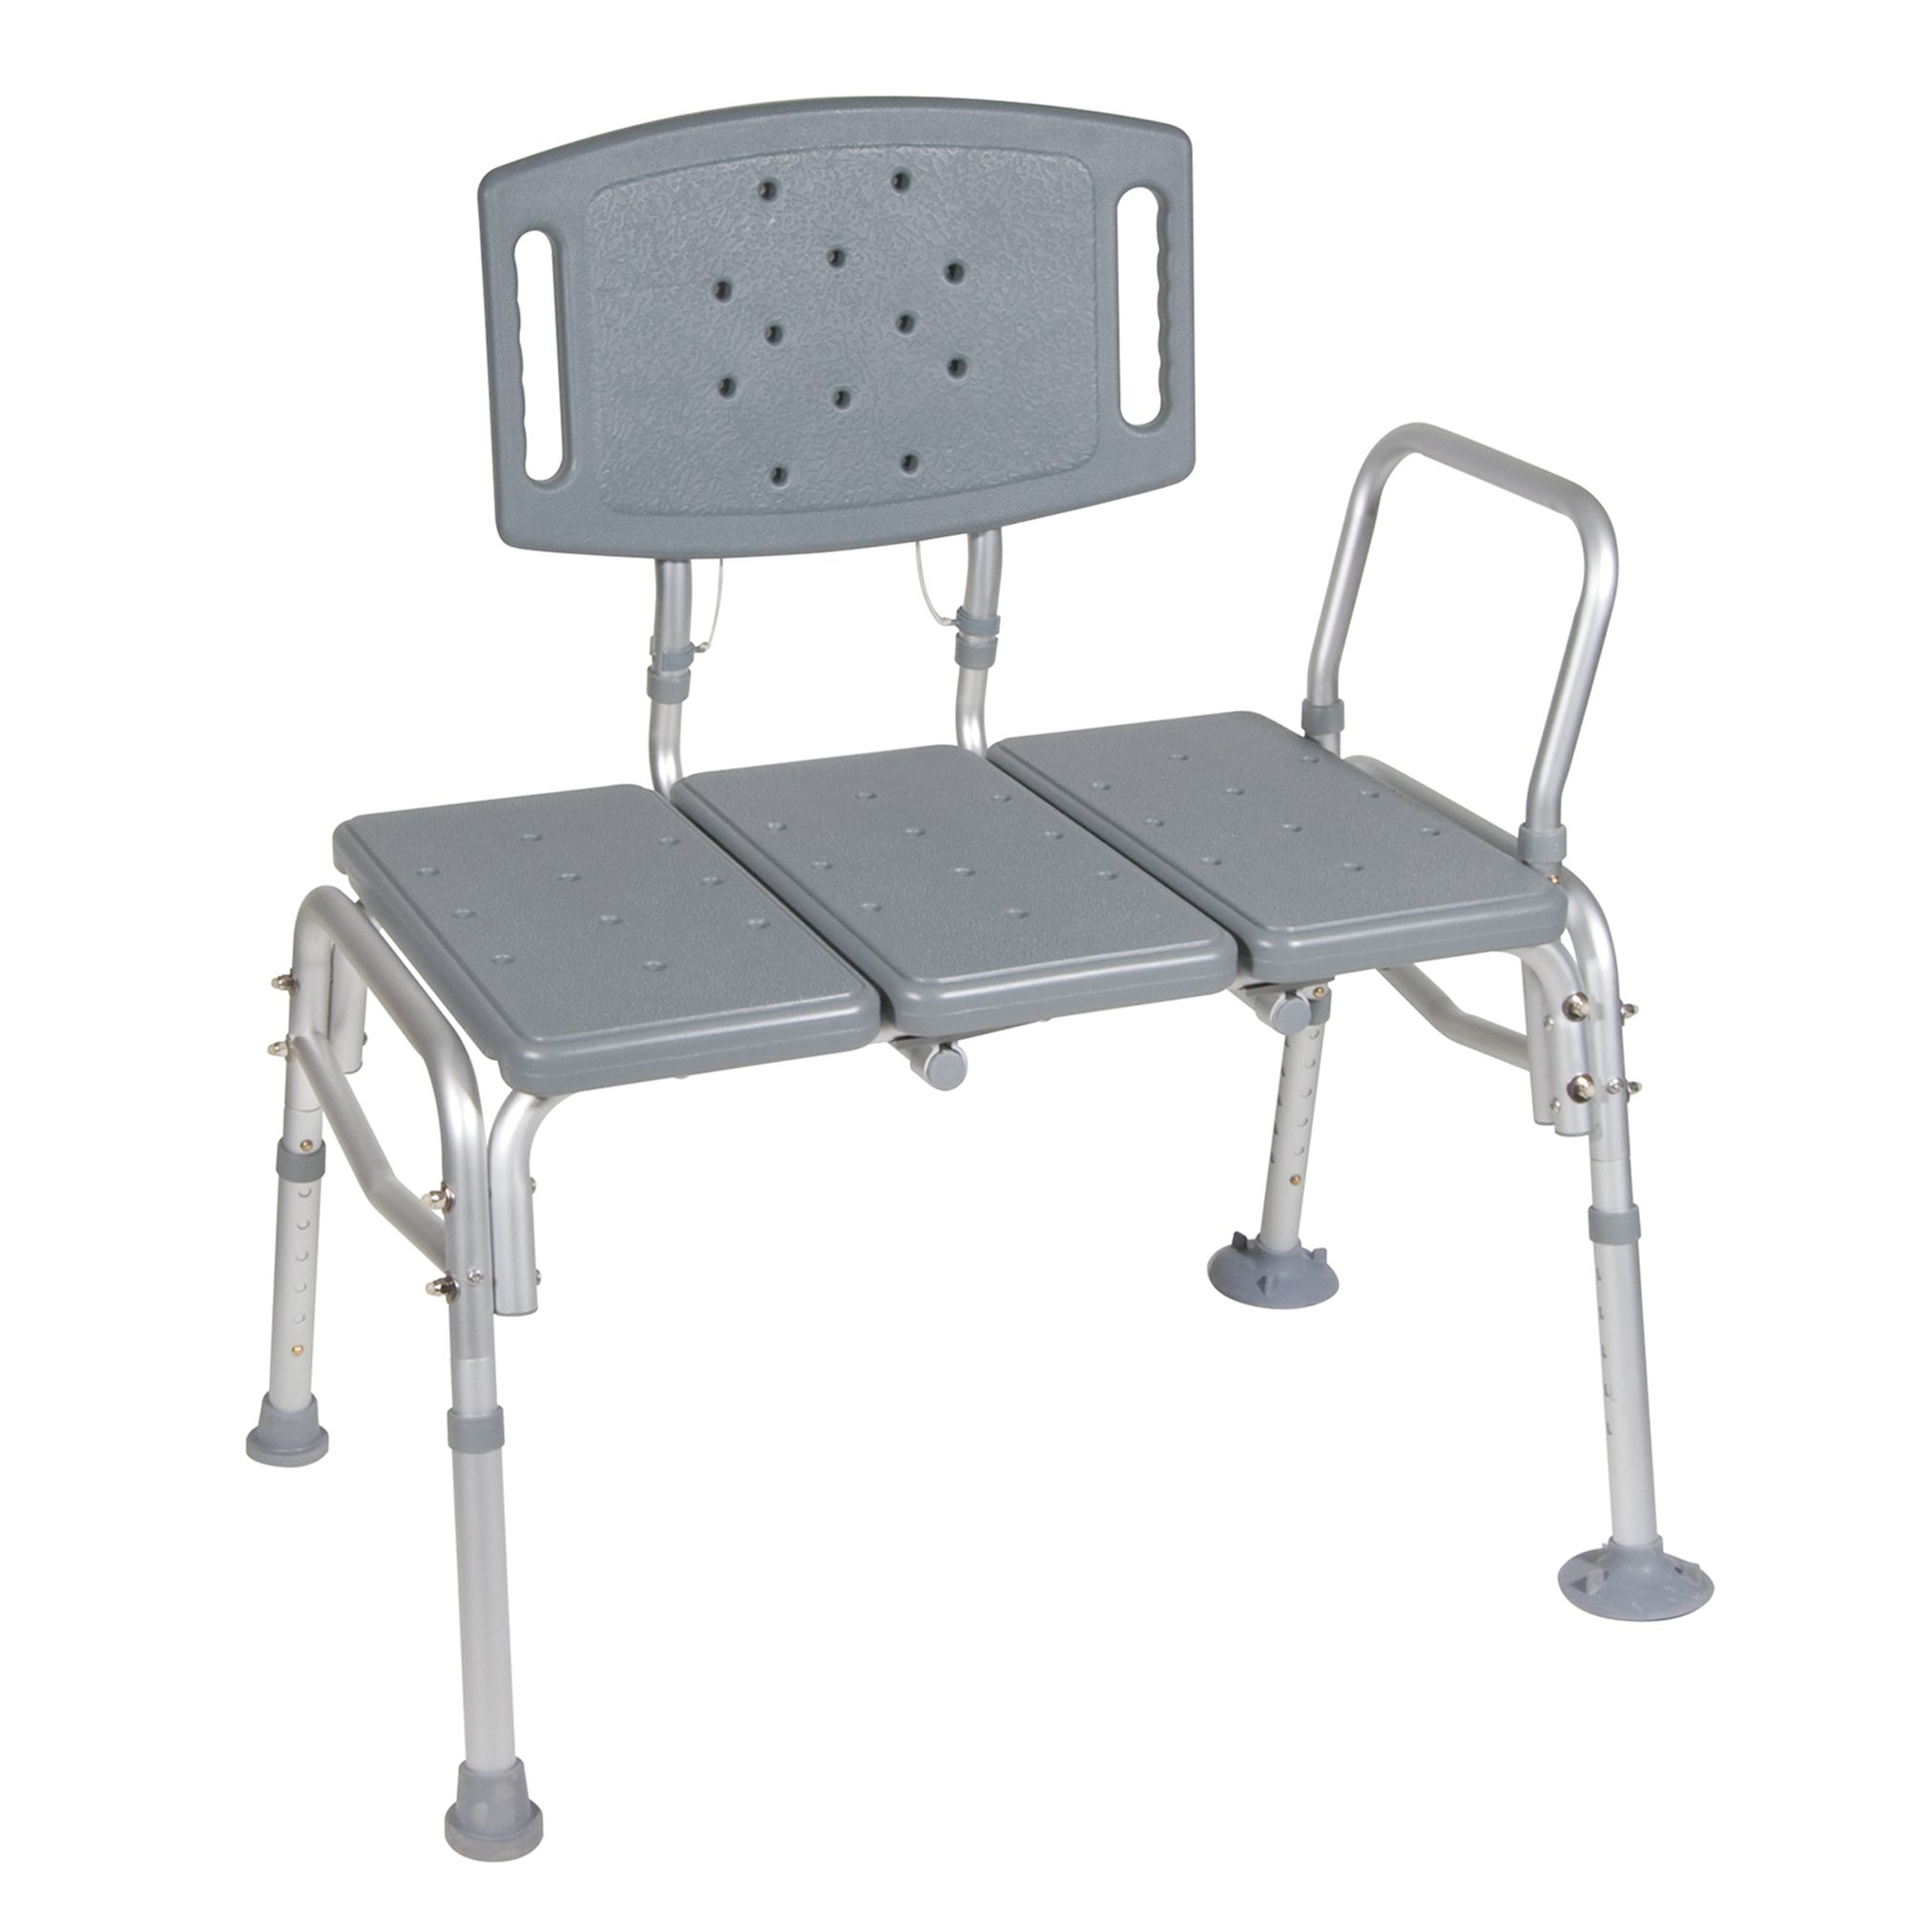 Drive Medical Heavy Duty Bariatric Plastic Seat Transfer Bench, Gray by Drive Medical